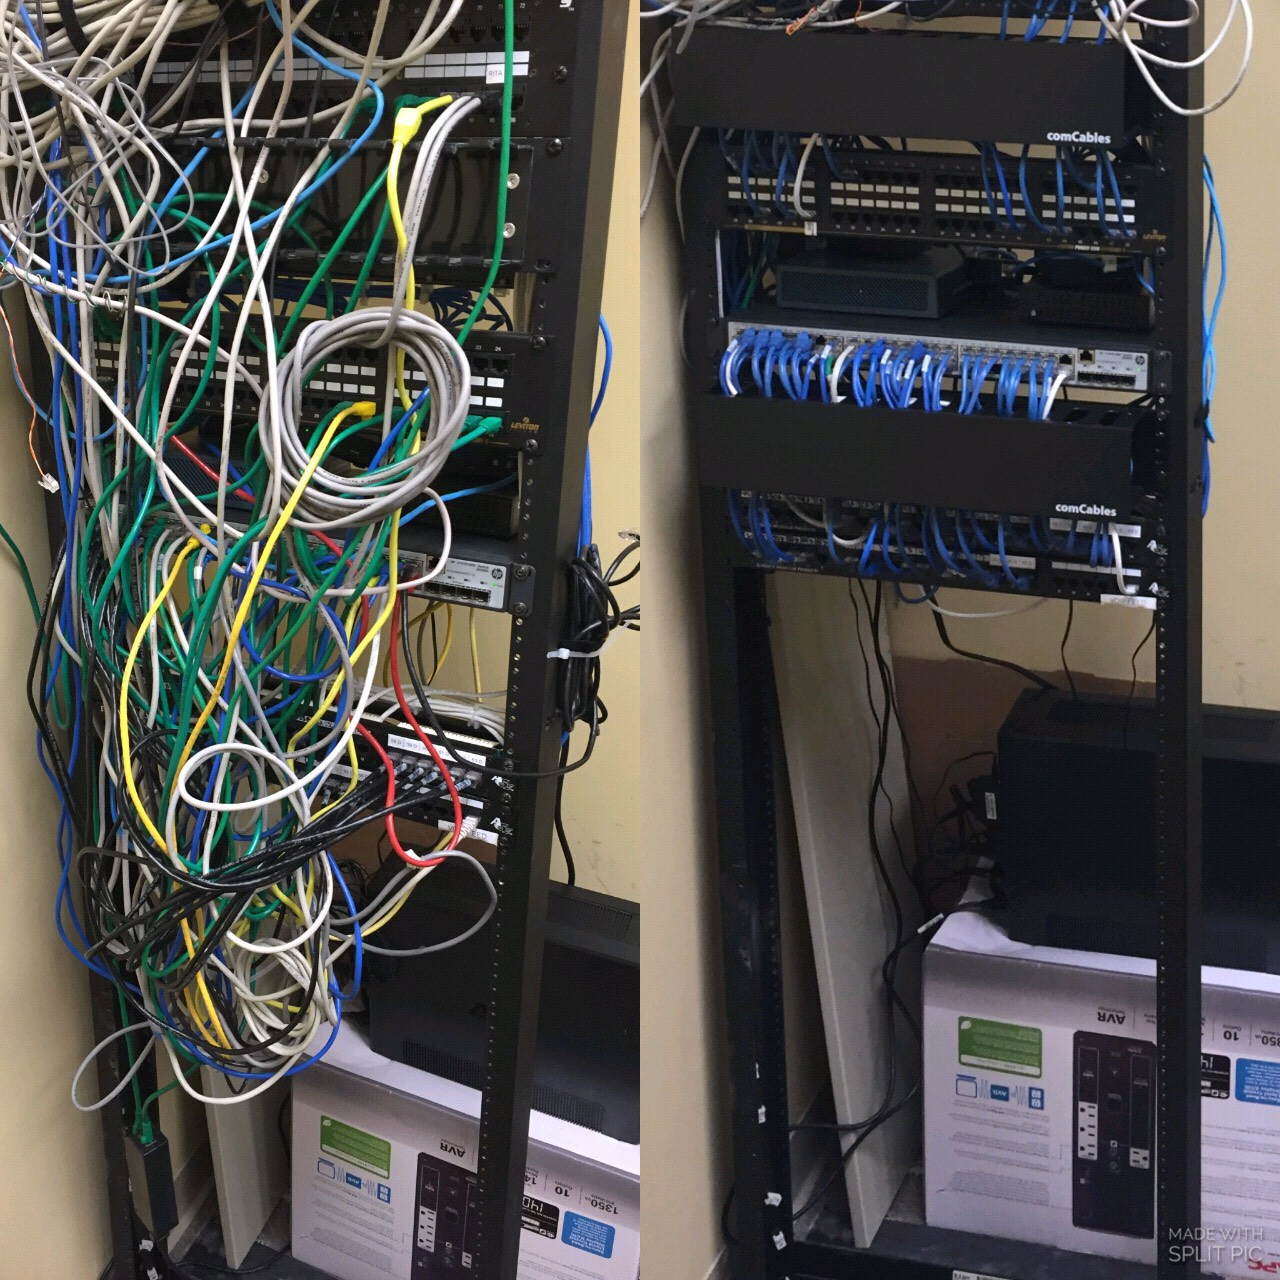 Running cat 5 cable before and after pictures